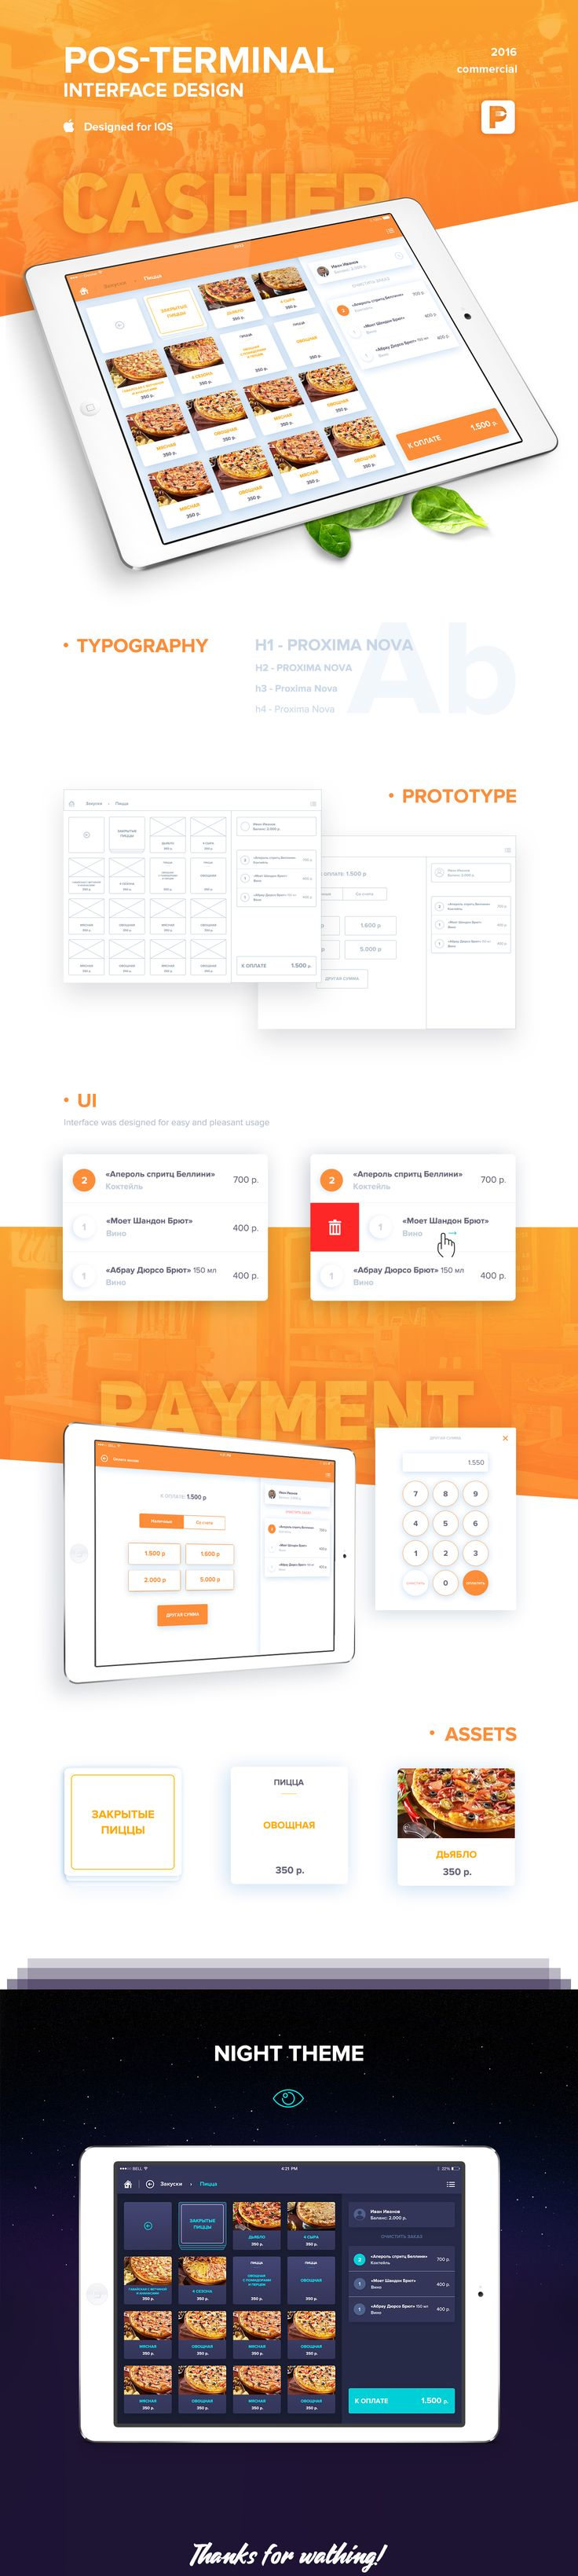 Restaurant POS Interface on Behance